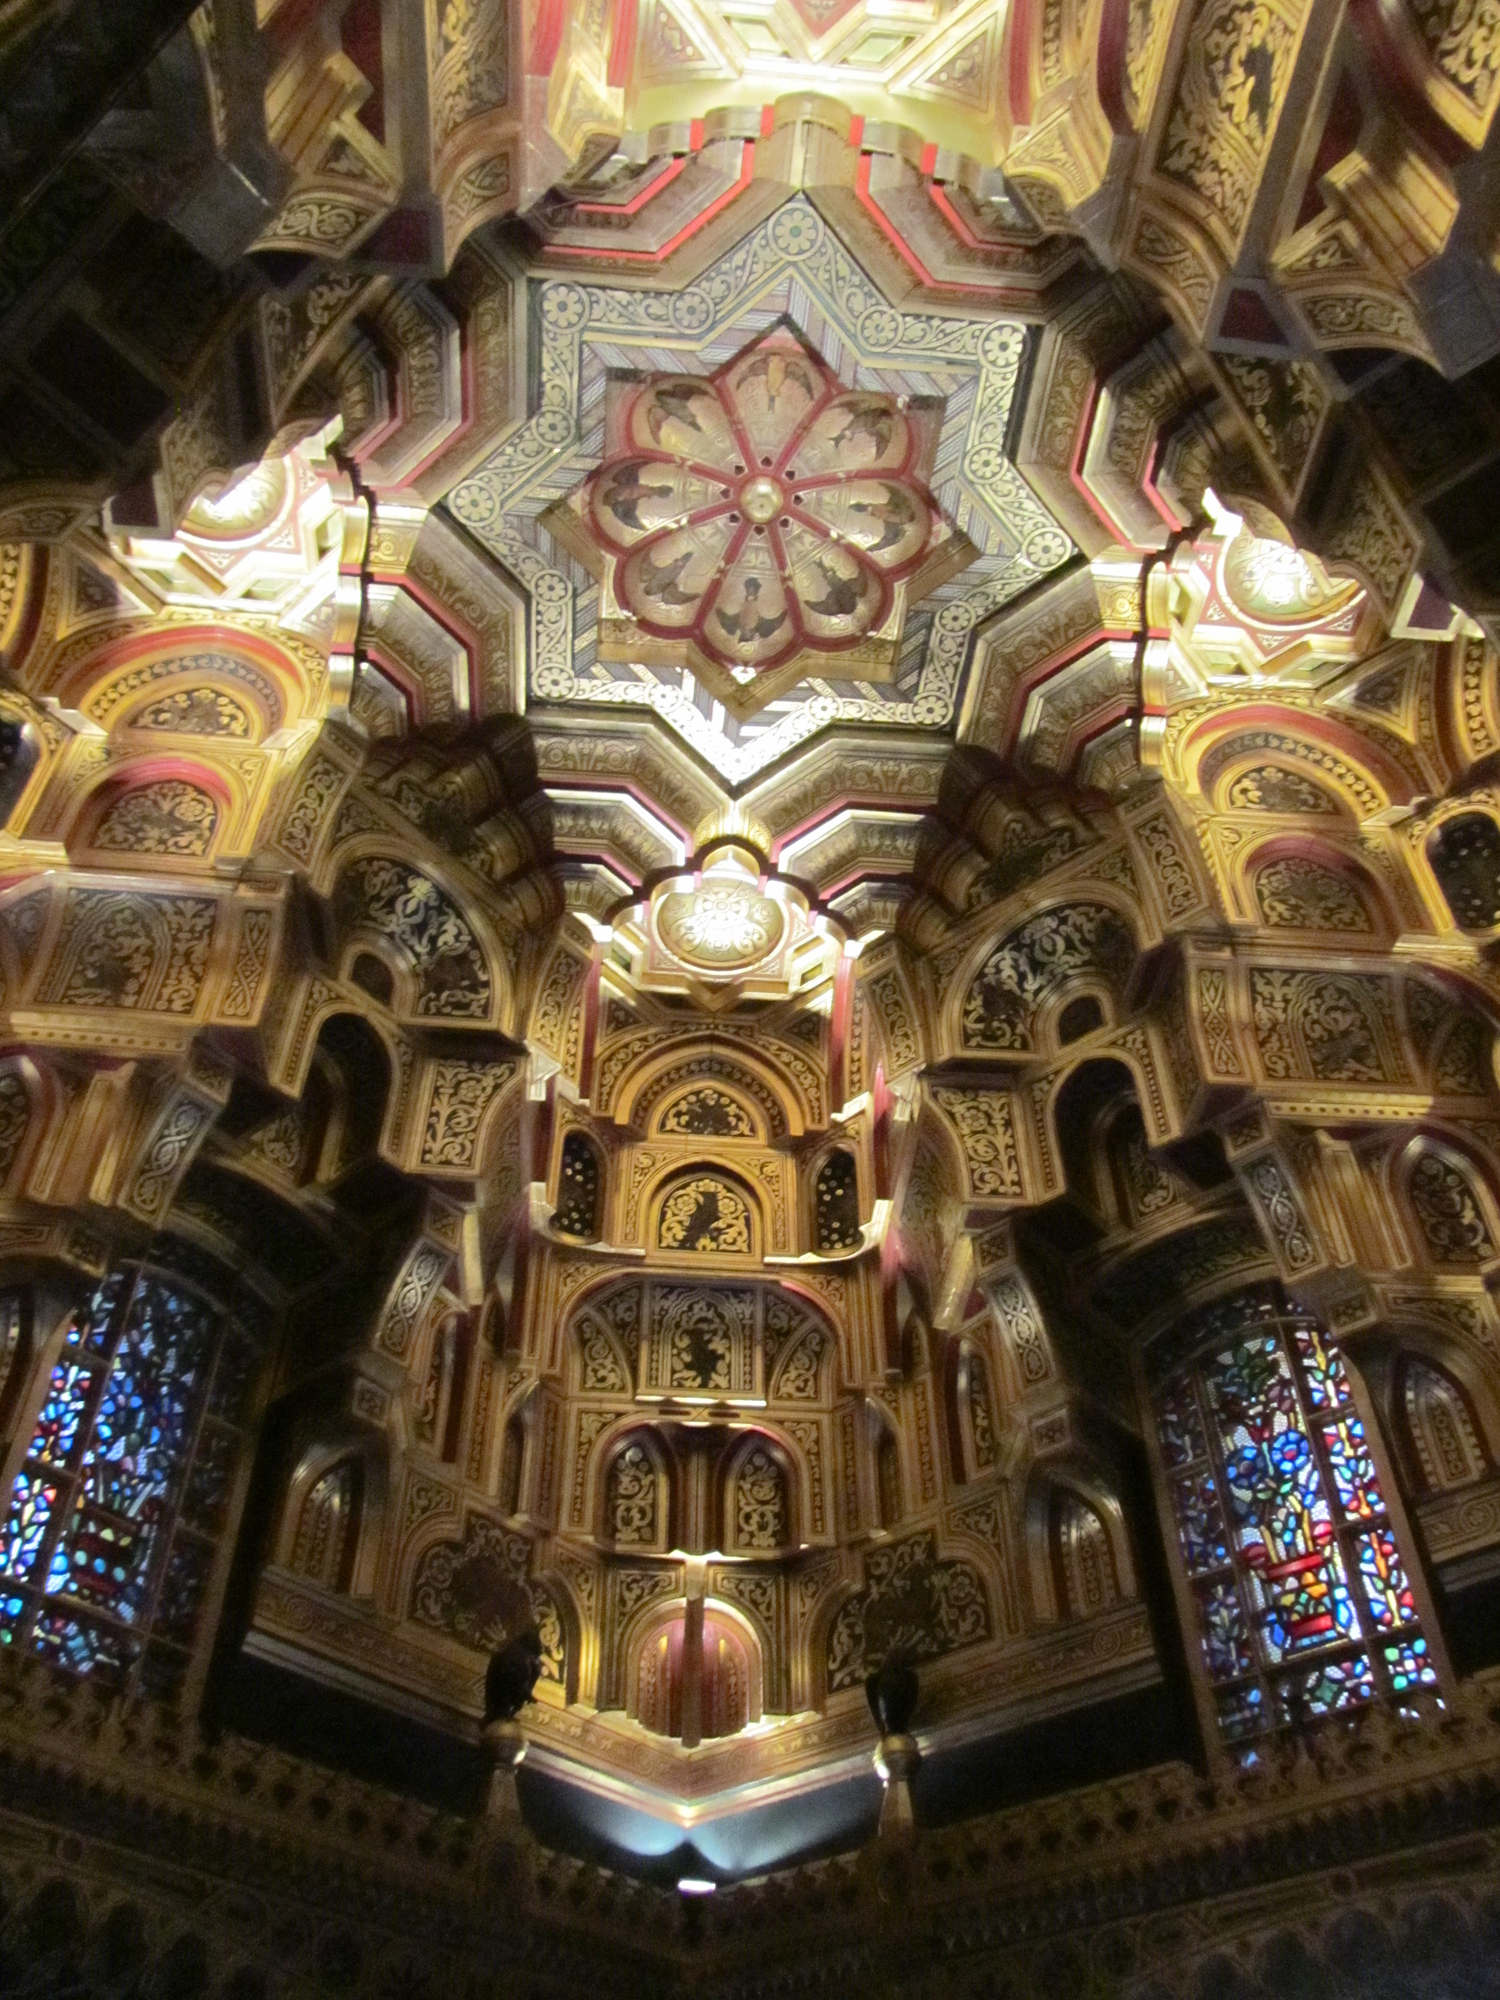 File:Ceiling arab room cardiff castle.jpg - Wikimedia Commons